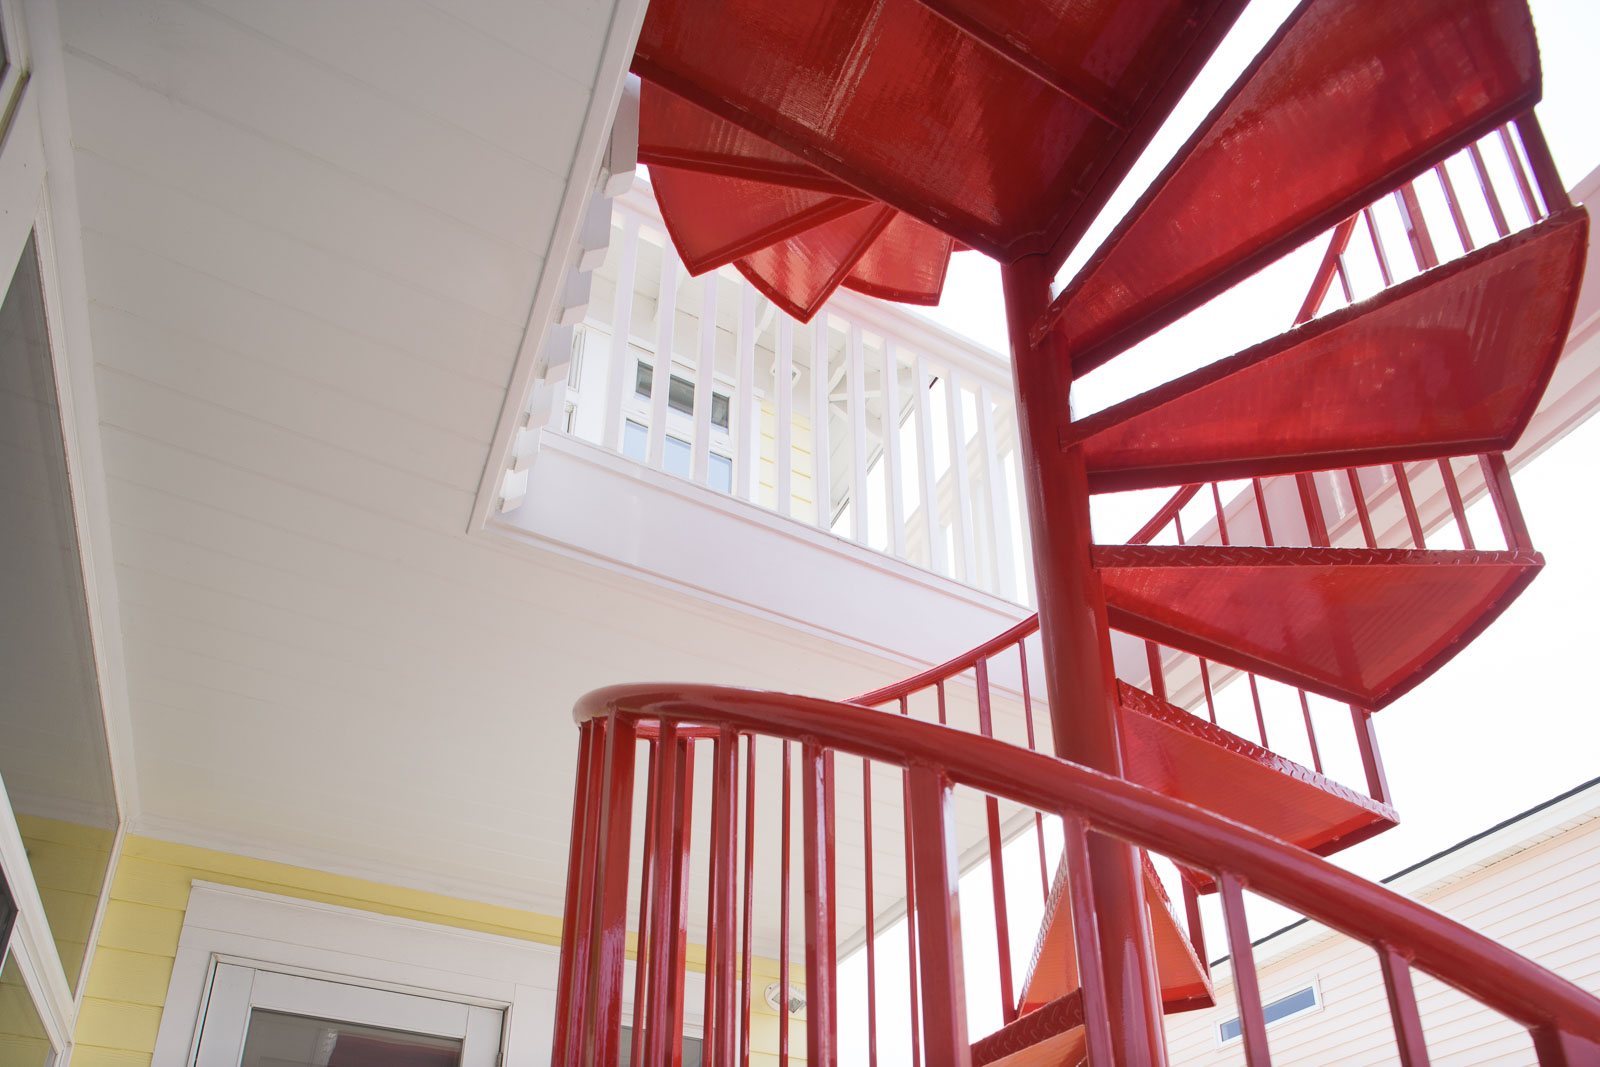 Red Interior stairway architecture photography shoot